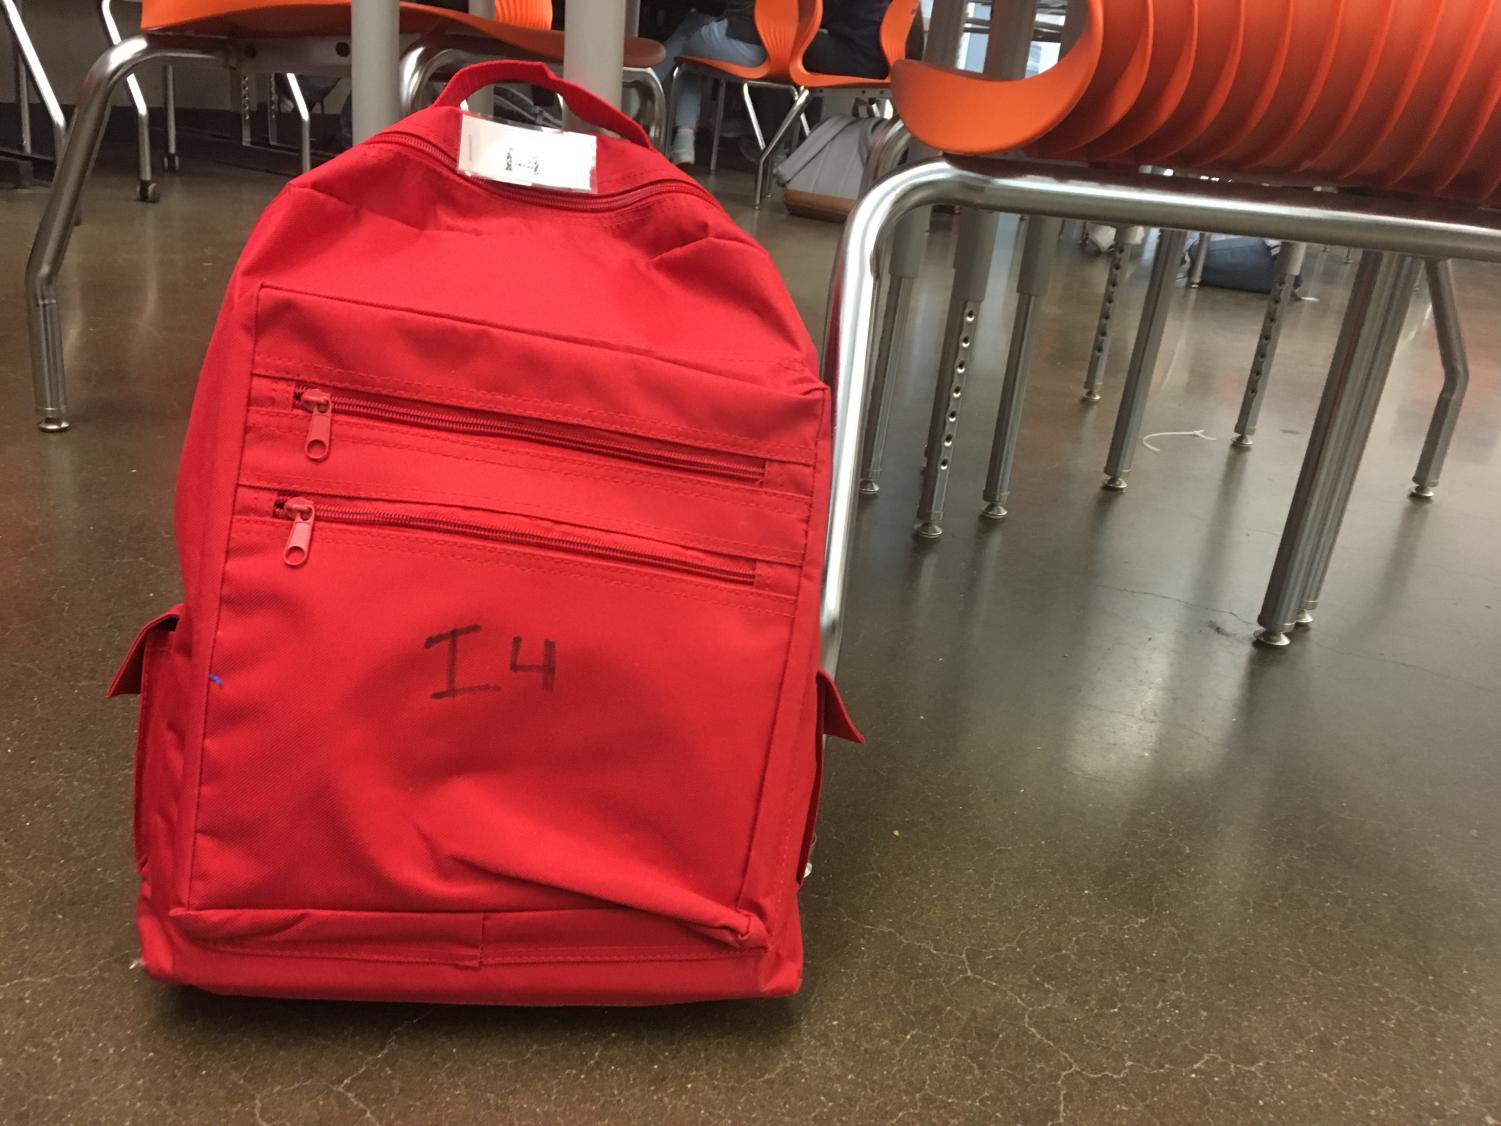 An emergency backpack sits in I-4. In case of an emergency, the backpack carries supplies for the class.